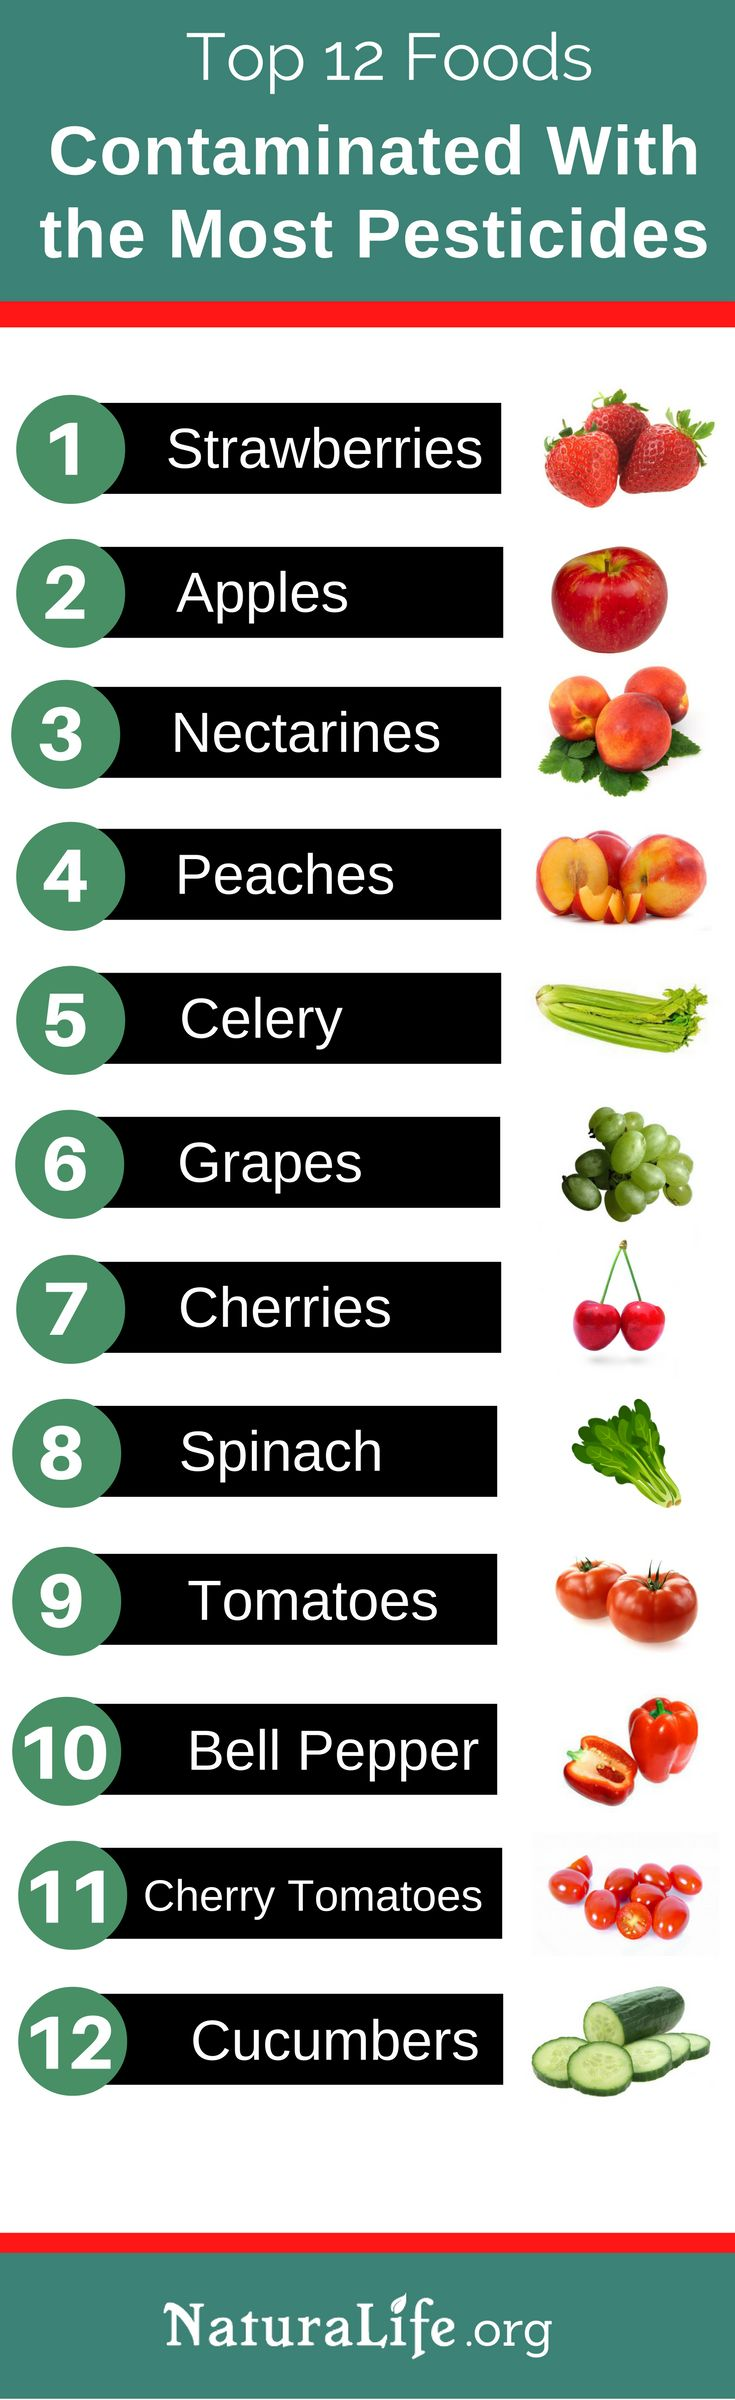 12 Foods That Should ALWAYS be bought #organic or not at all because they contain high levels of pesticides. I keep this list bookmarked so I can avoid these foods or make sure I buy them organic when I am grocery shopping. It's really important to avoid pesticides because they can cause cancer, brain damage, and many other health issues. 7:47 pm via Web